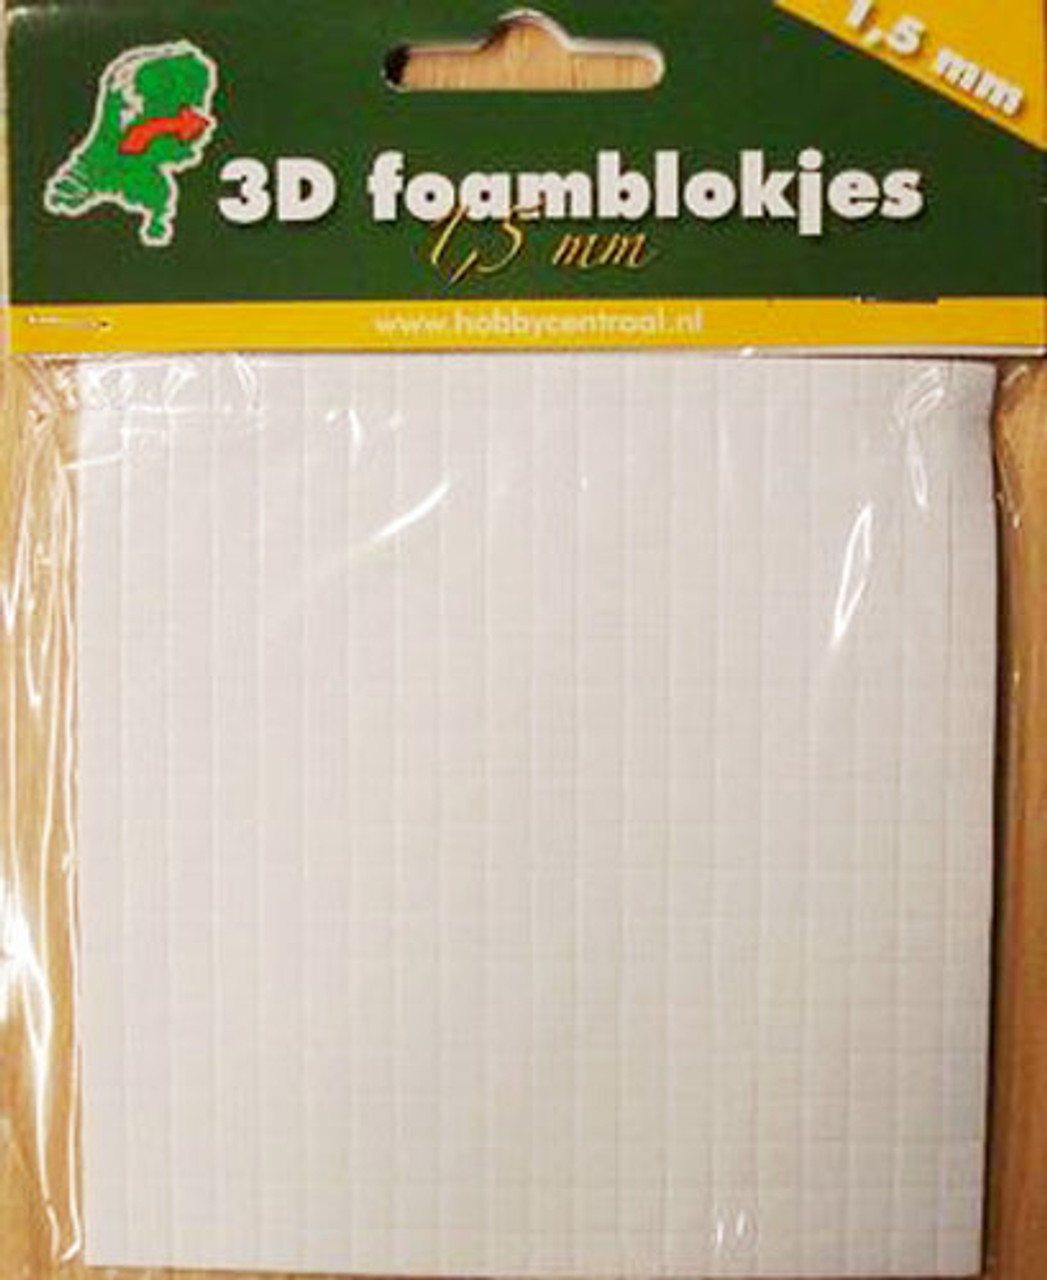 3D Foam Squares Hobbycentraal  - 1.5mm  x 5mm x 5mm